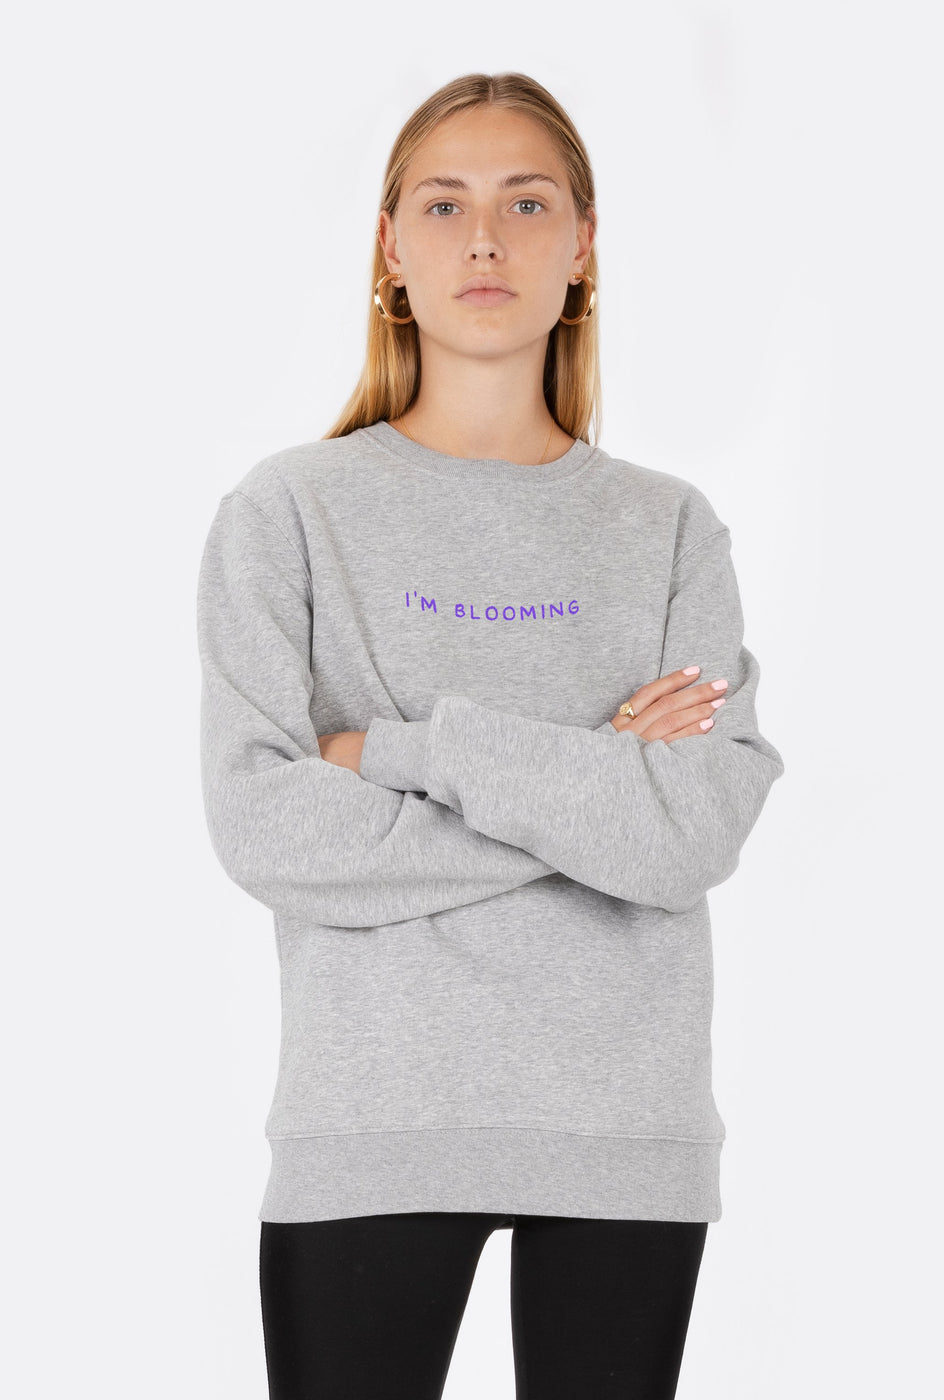 Crewneck I'm Blooming - Embroidered